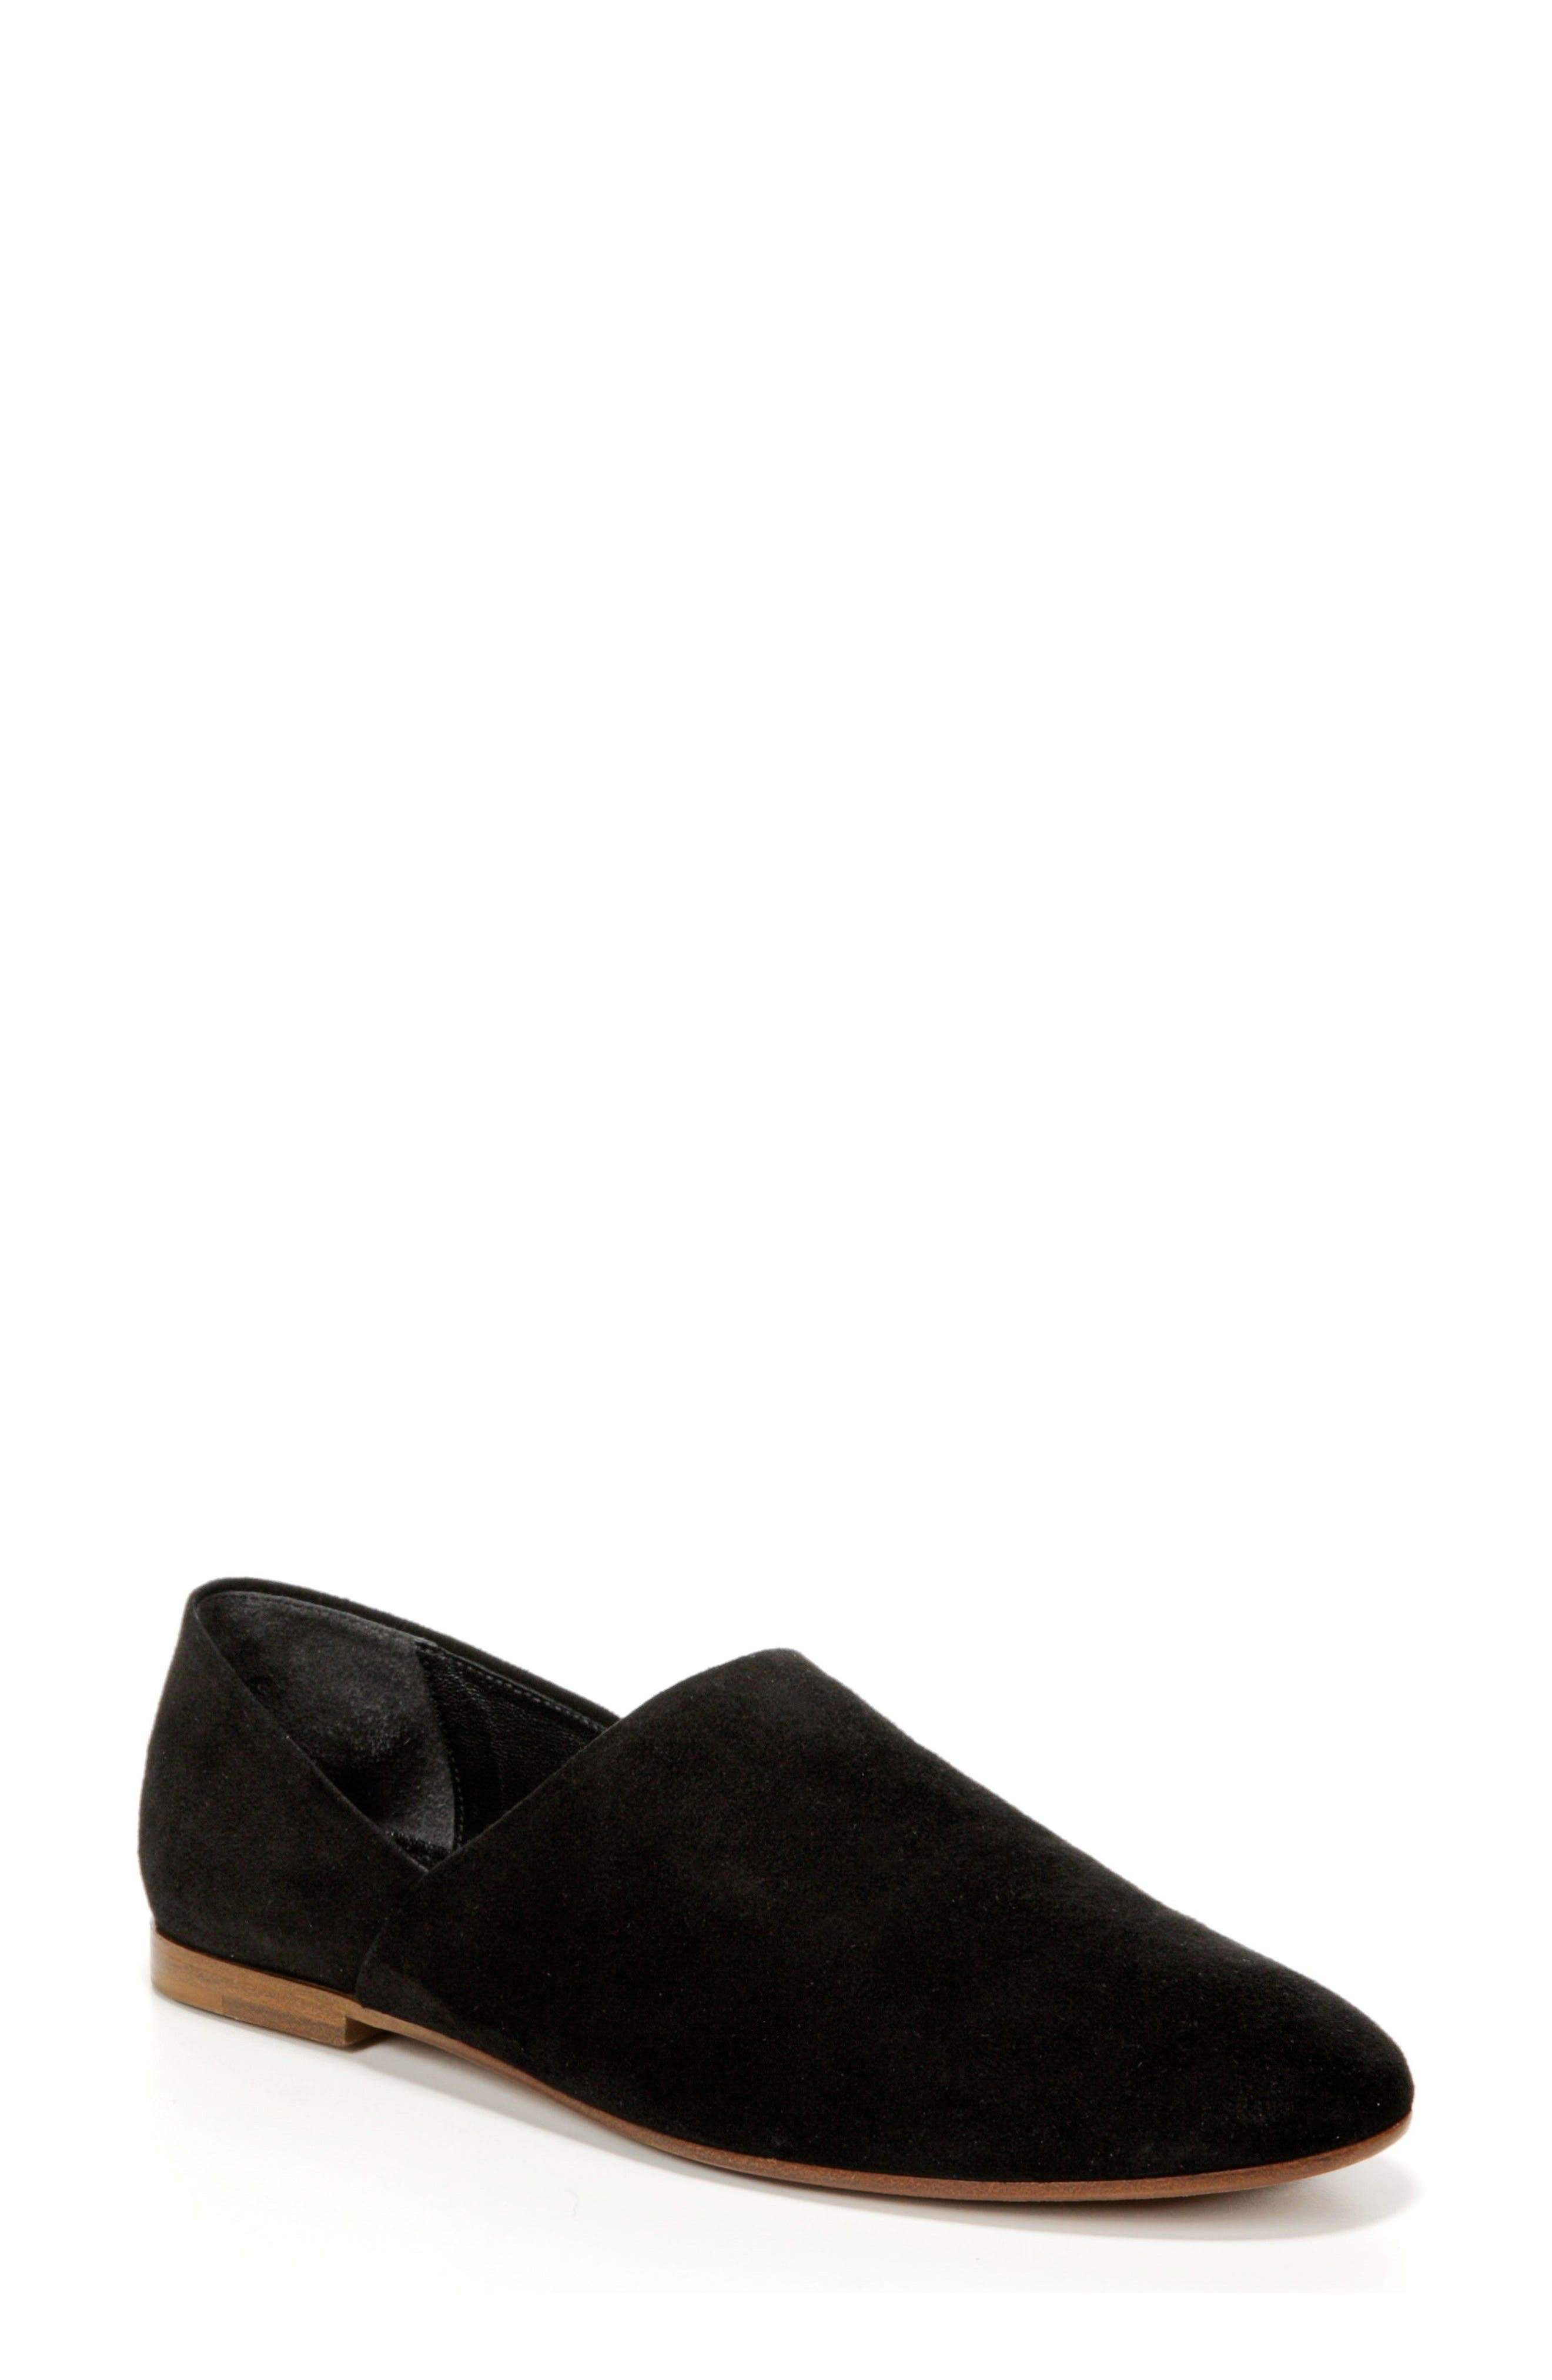 Maude Loafer,                         Main,                         color, 001